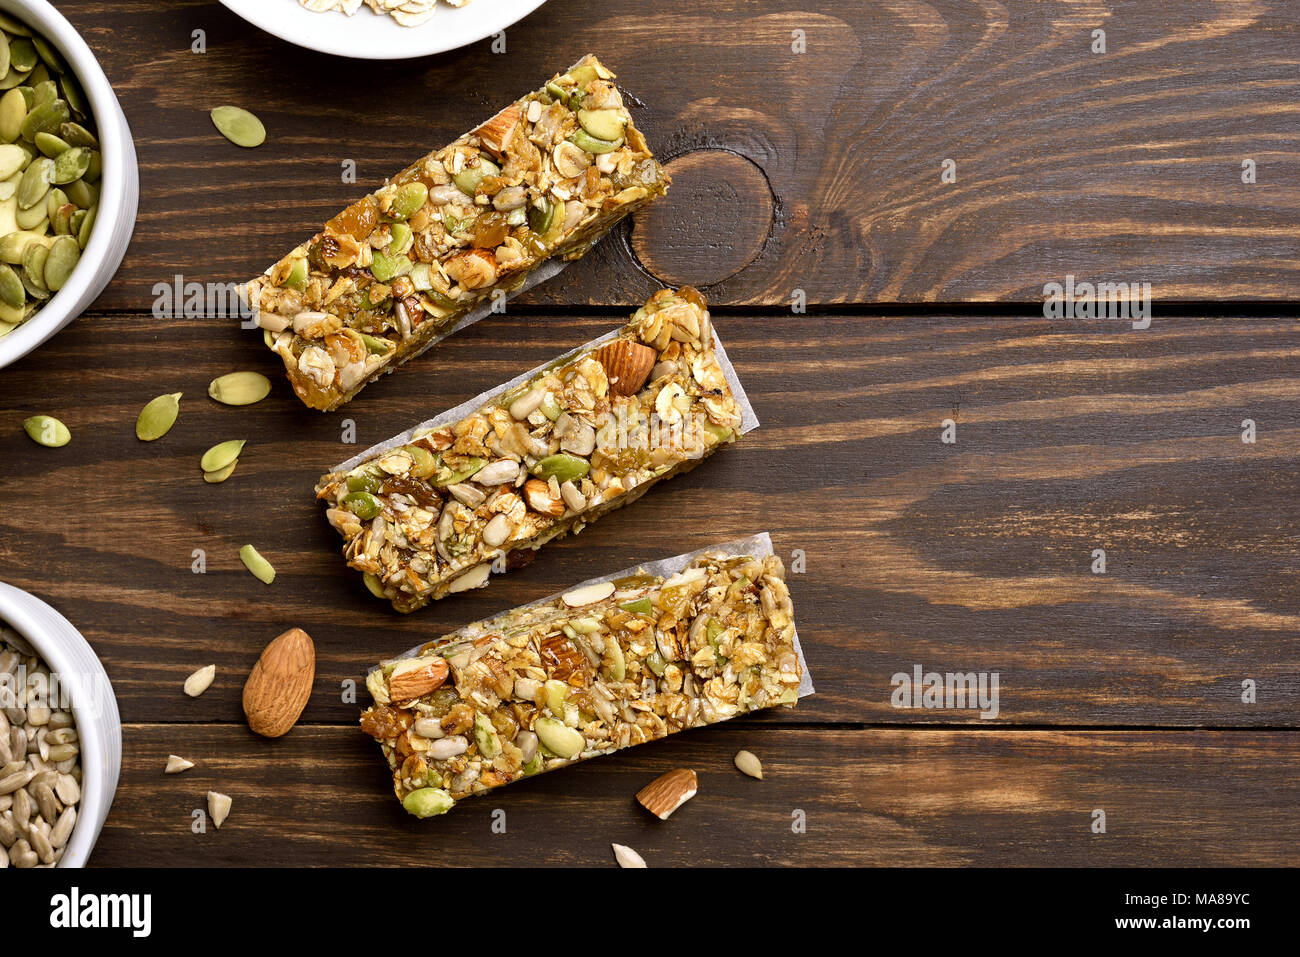 No baked granola bar on wooden background with copy space. Energy natural snack. Top view, flat lay - Stock Image